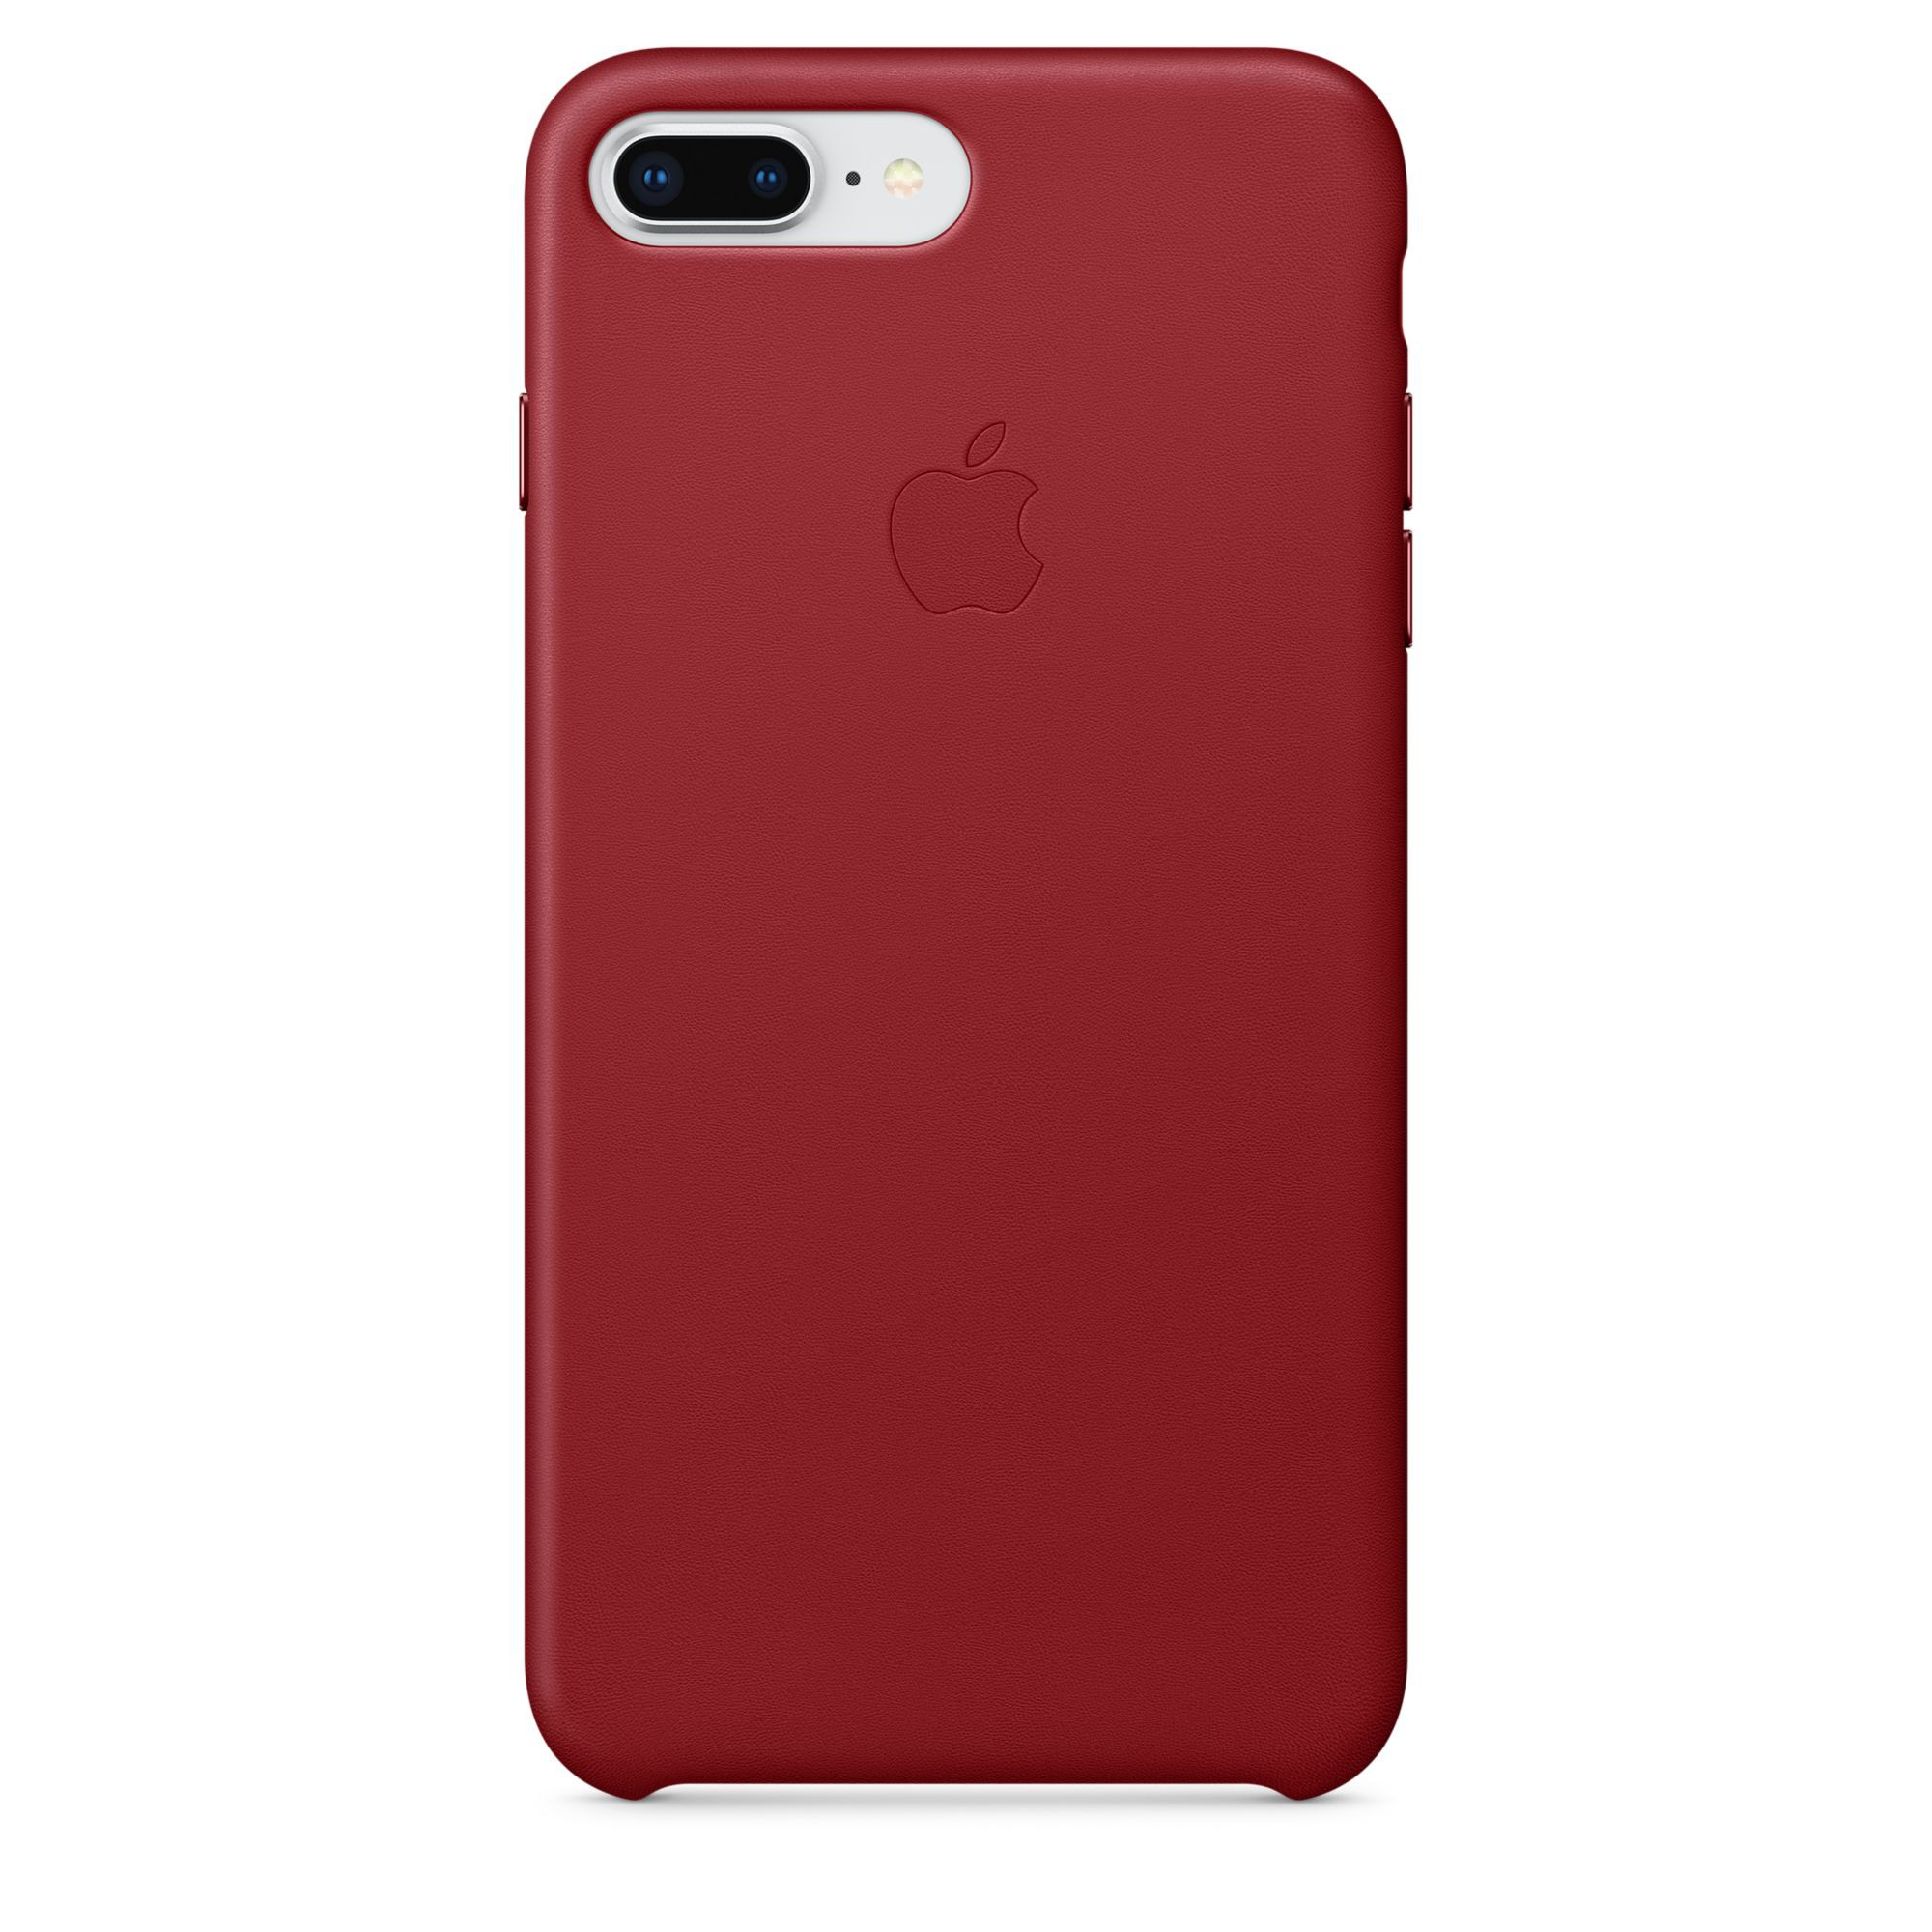 istyle apple store buy iphone xr, iphone xs xs max, iphone 8apple iphone 8 plus 7 plus leather case